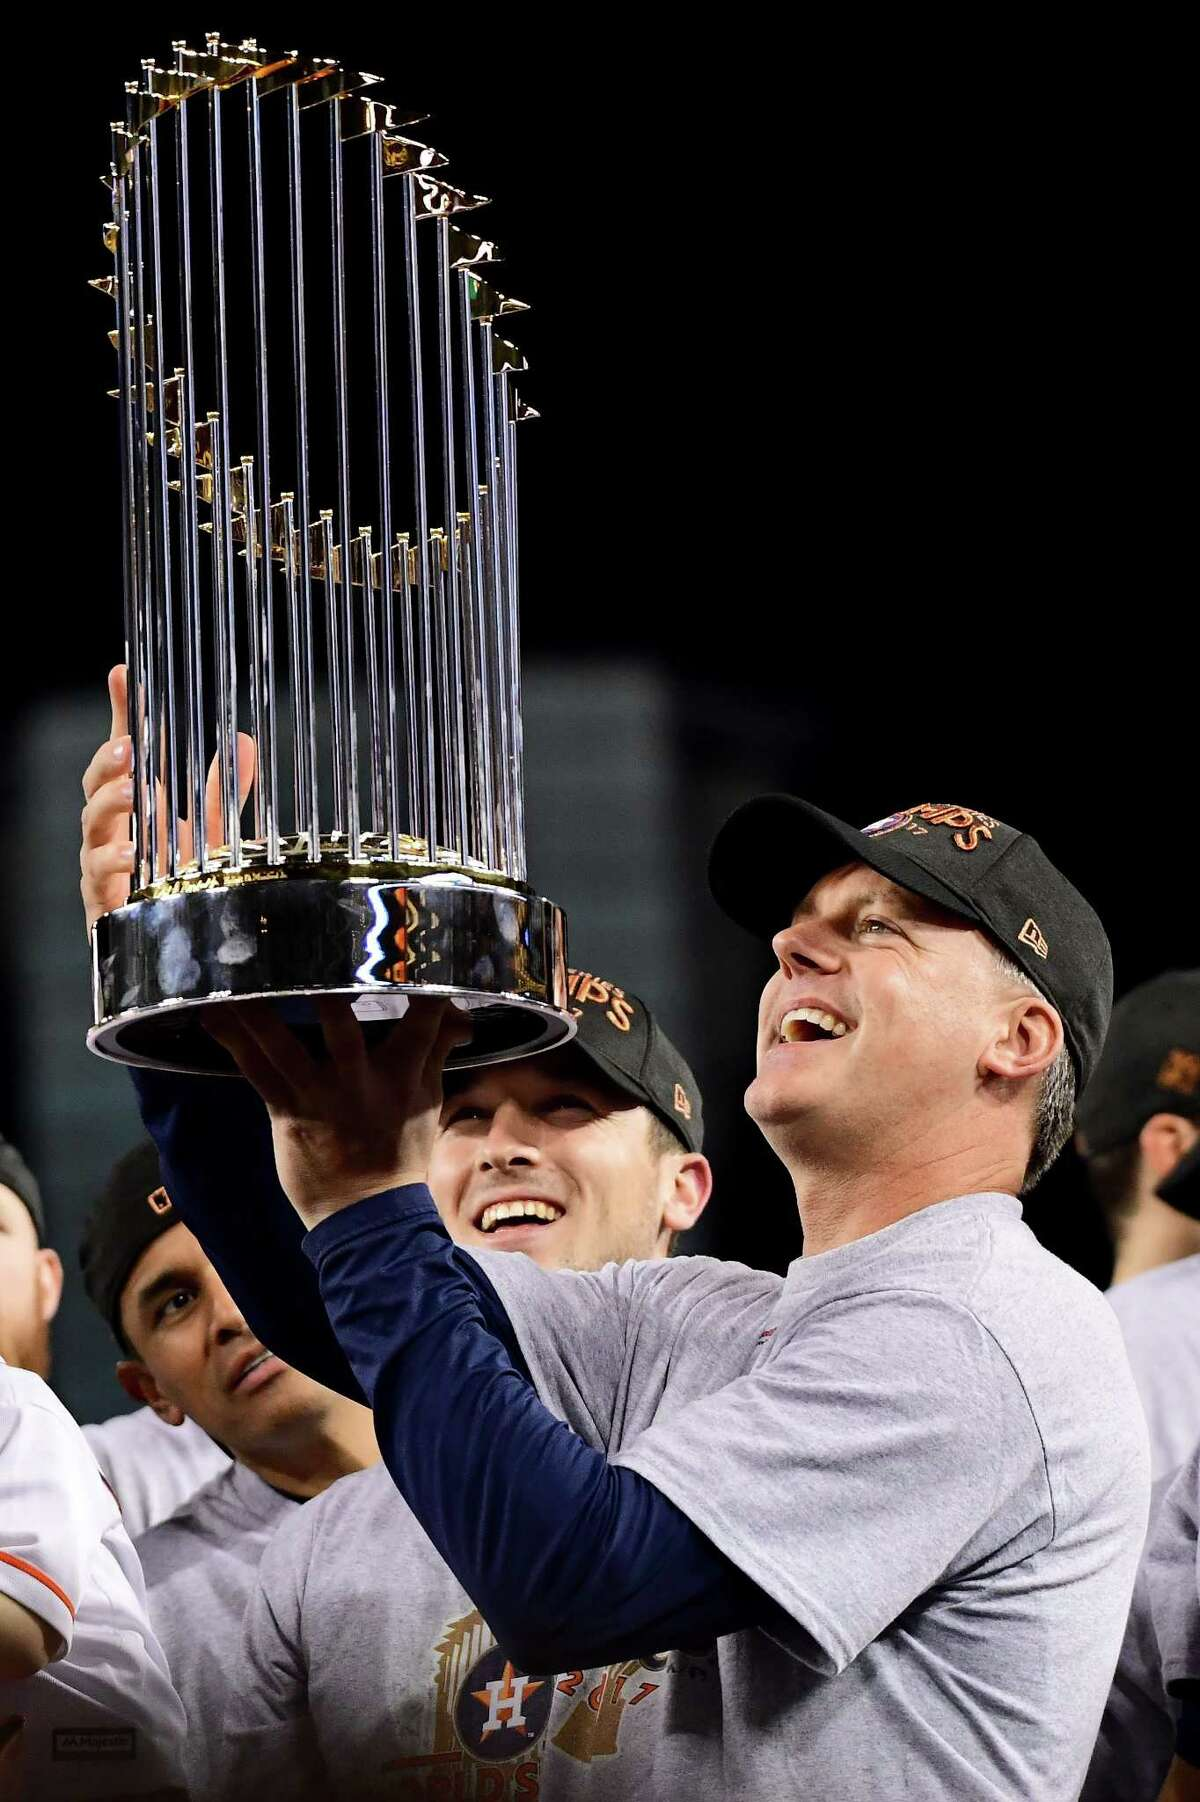 LOS ANGELES, CA - NOVEMBER 01: Manager A.J. Hinch of the Houston Astros holds the Commissioner's Trophy after defeating the Los Angeles Dodgers 5-1 in game seven to win the 2017 World Series at Dodger Stadium on November 1, 2017 in Los Angeles, California. (Photo by Harry How/Getty Images)